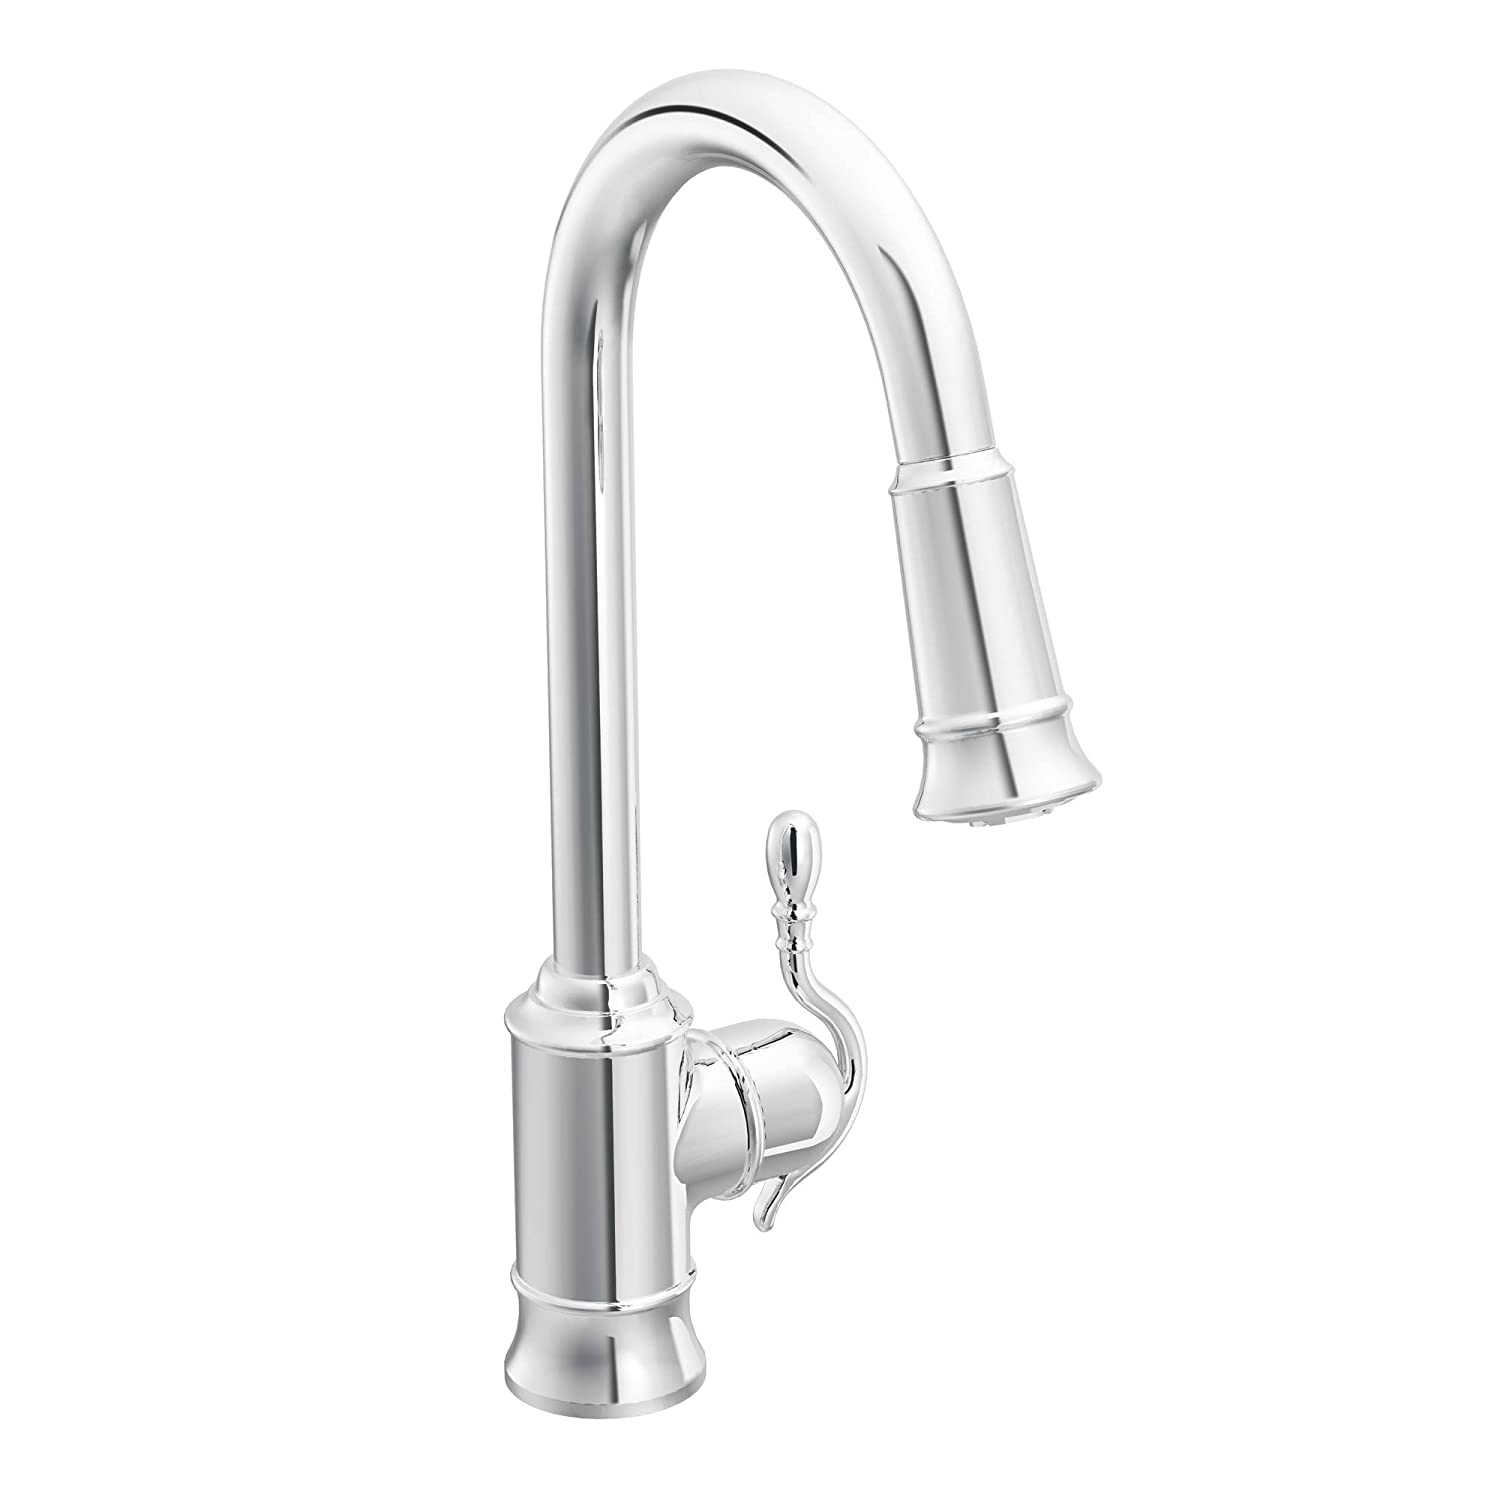 on sink touchless motionsense brantford dp featuring stainless faucet pulldown arc high moen two one handle reflex touch spot kitchen sensor resist